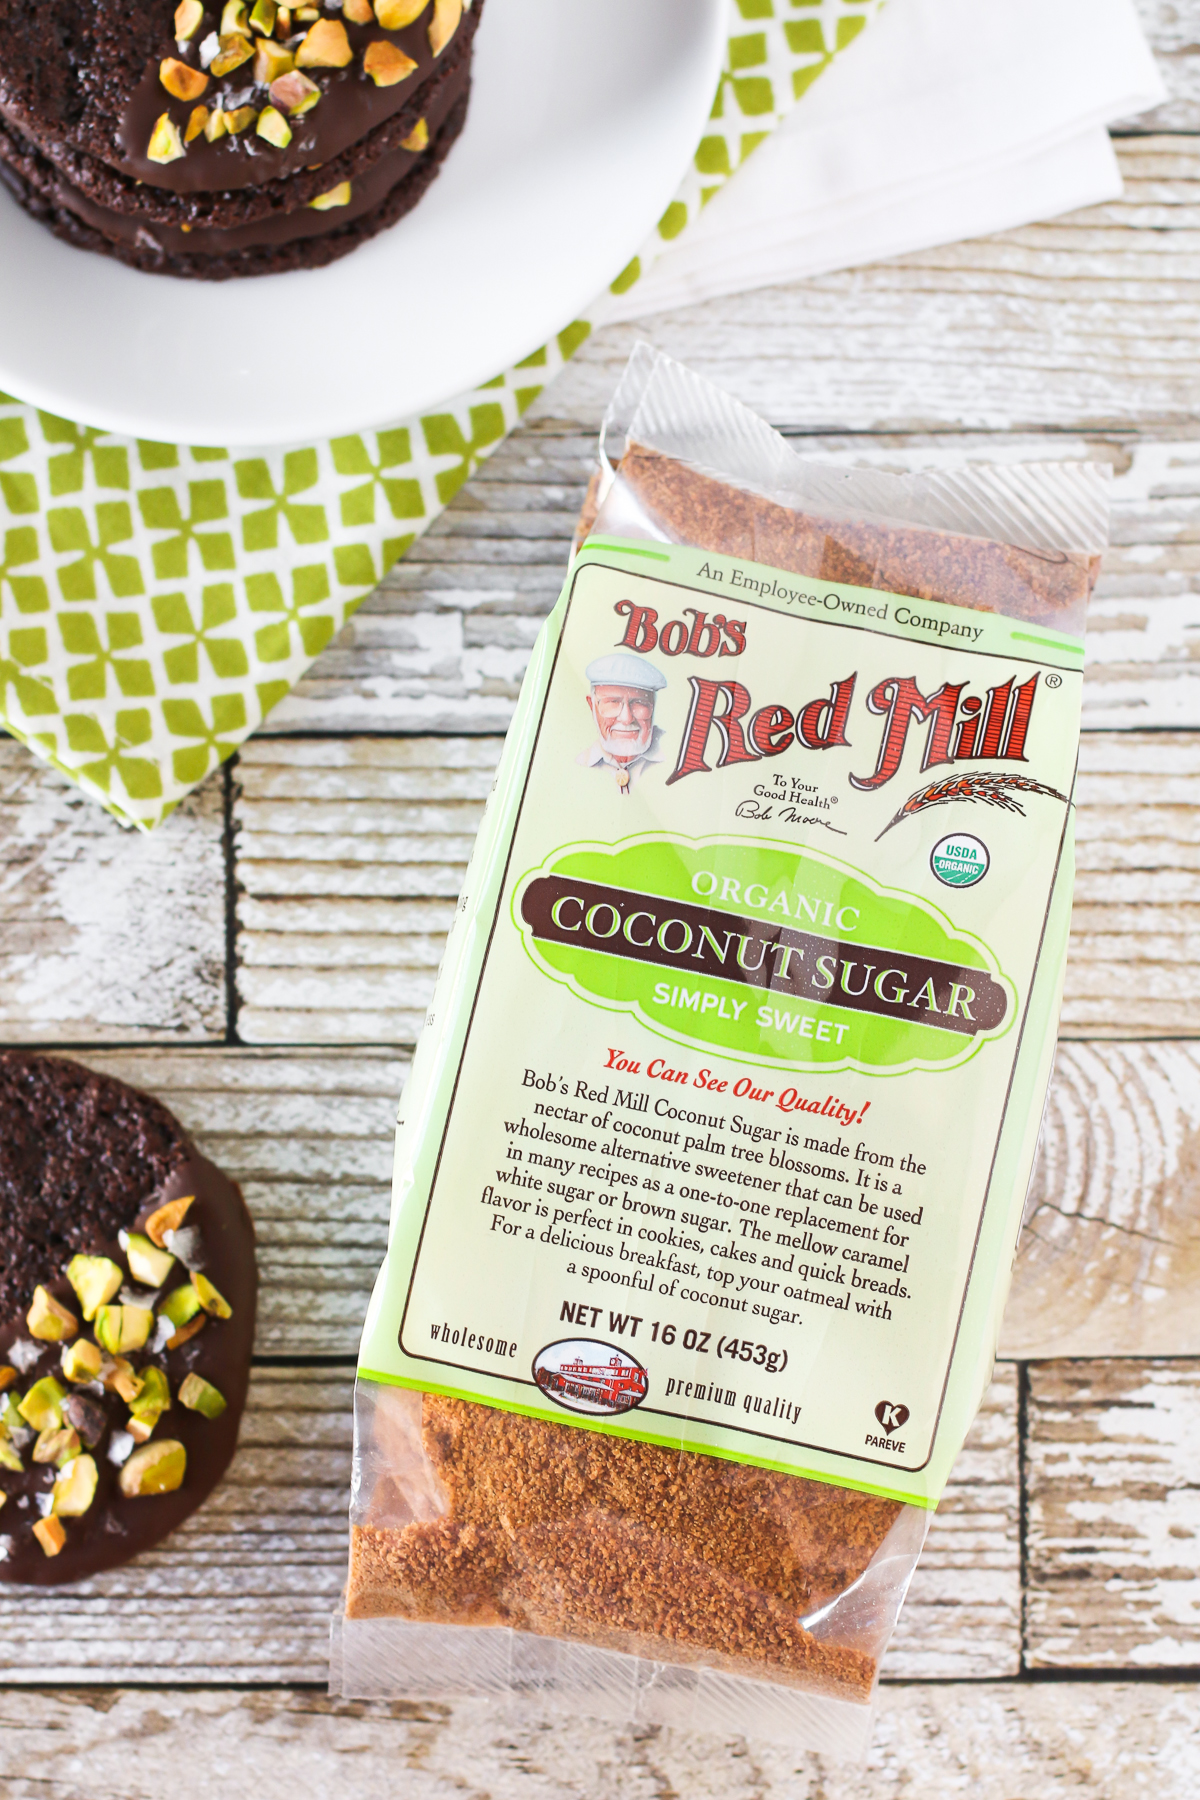 Grain Free Vegan Sea Salt Pistachio Chocolate Cookies. Made with Bob's Red Mill Coconut Sugar, these chocolate-dipped cookies are quite decadent!